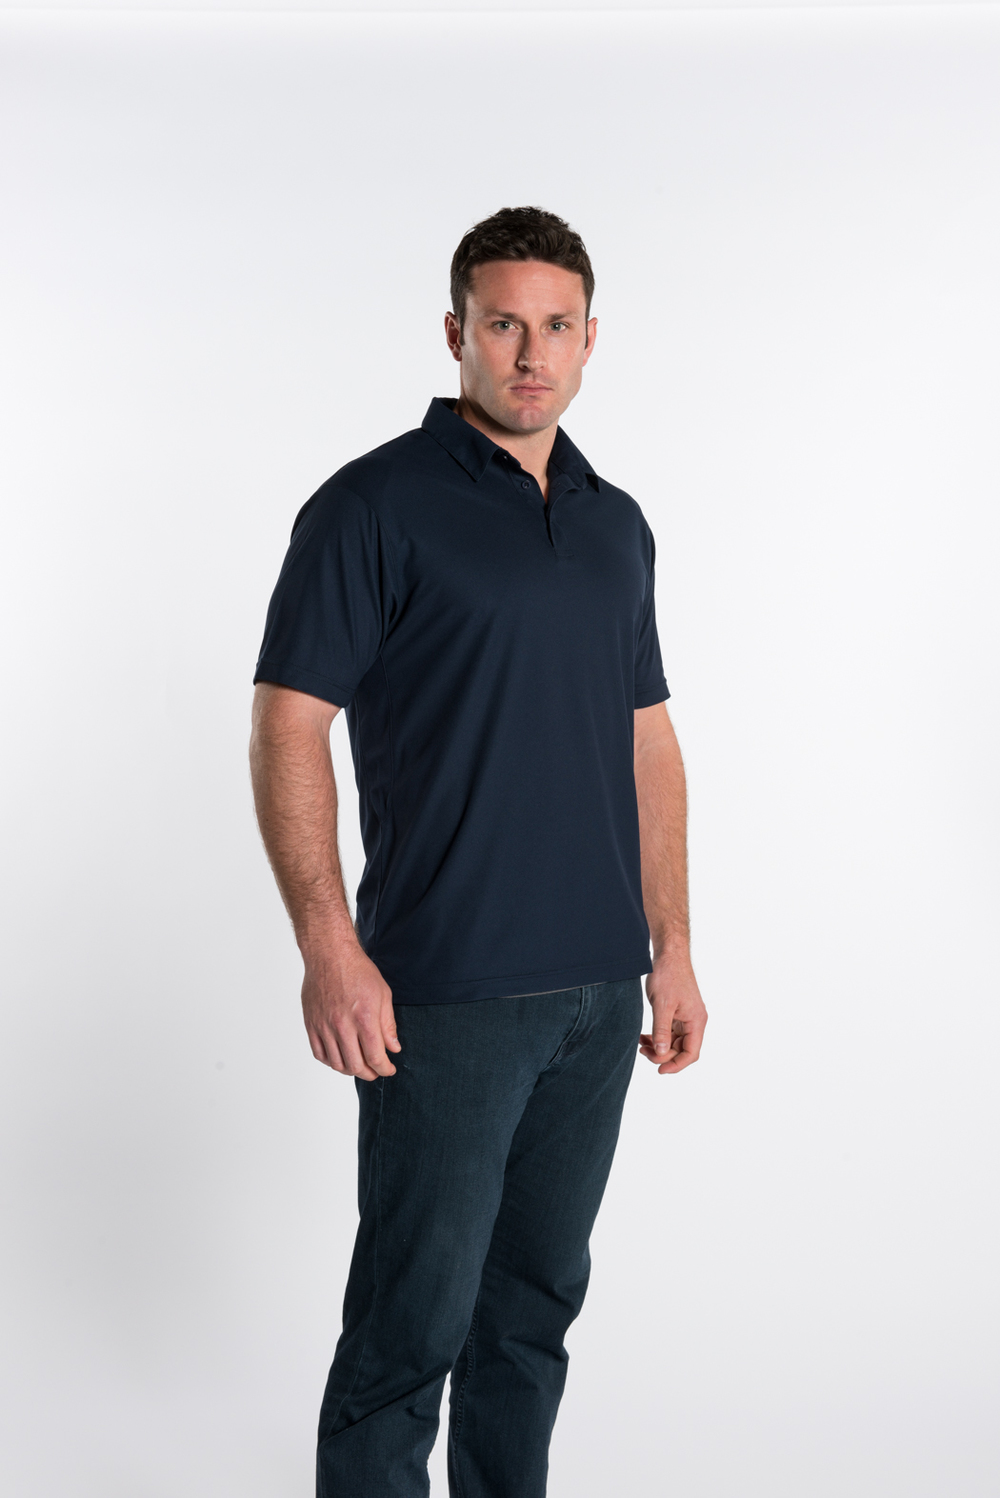 Kevin_DkBlue_Polo_-11